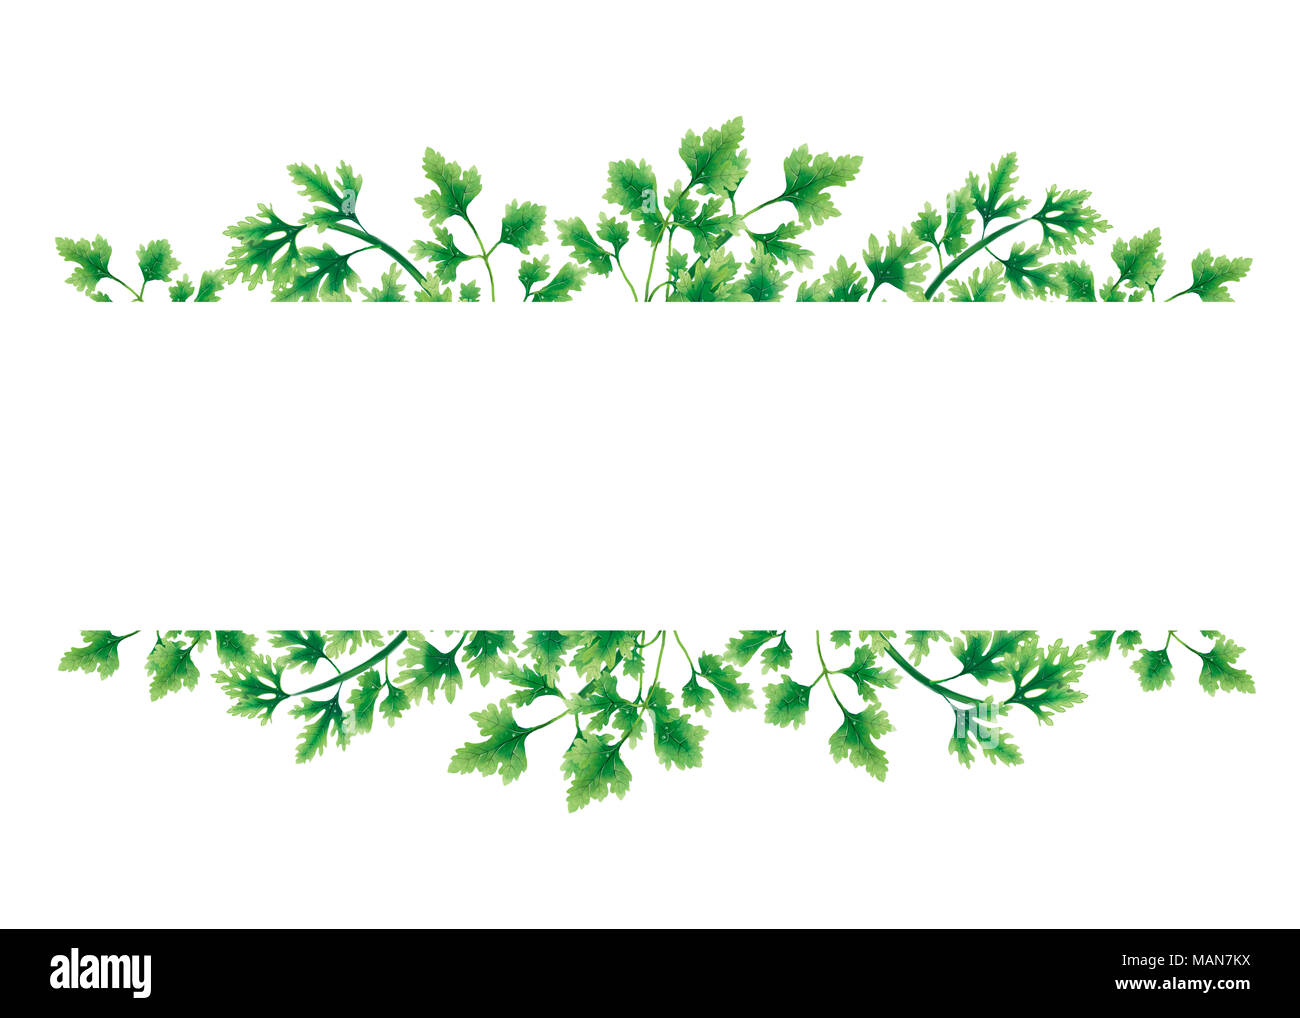 Green of parsley leaves at the borders - Stock Image